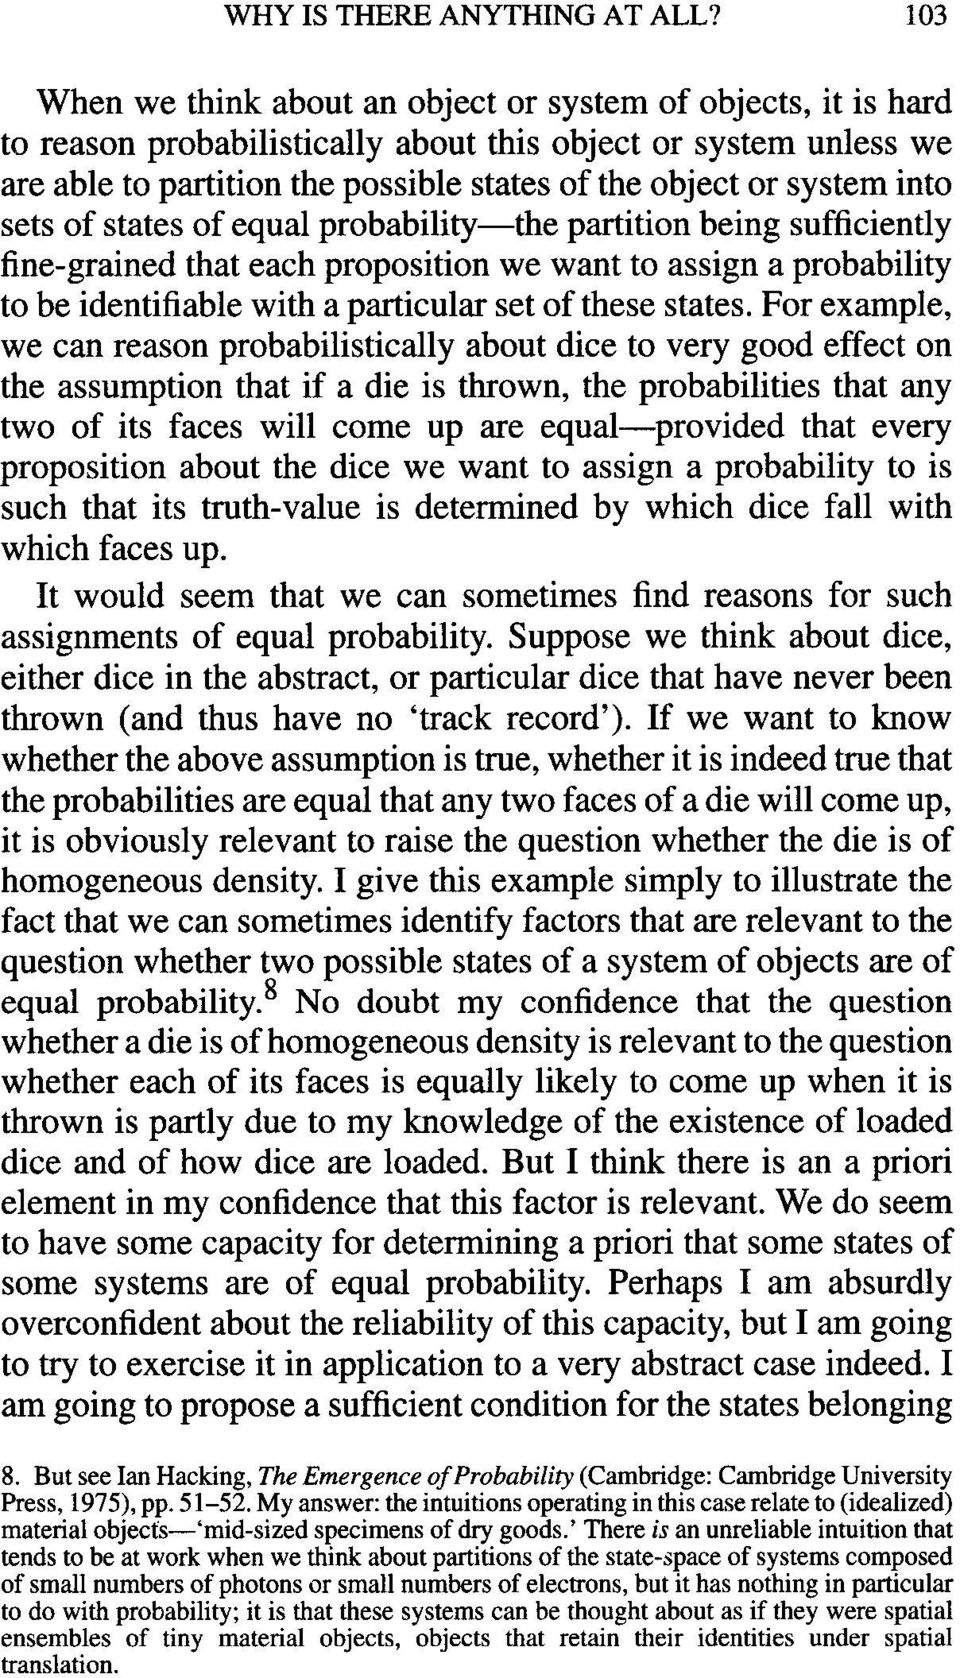 into sets of states of equal probability-the partition being sufficiently fine-grained that each proposition we want to assign a probability to be identifiable with a particular set of these states.